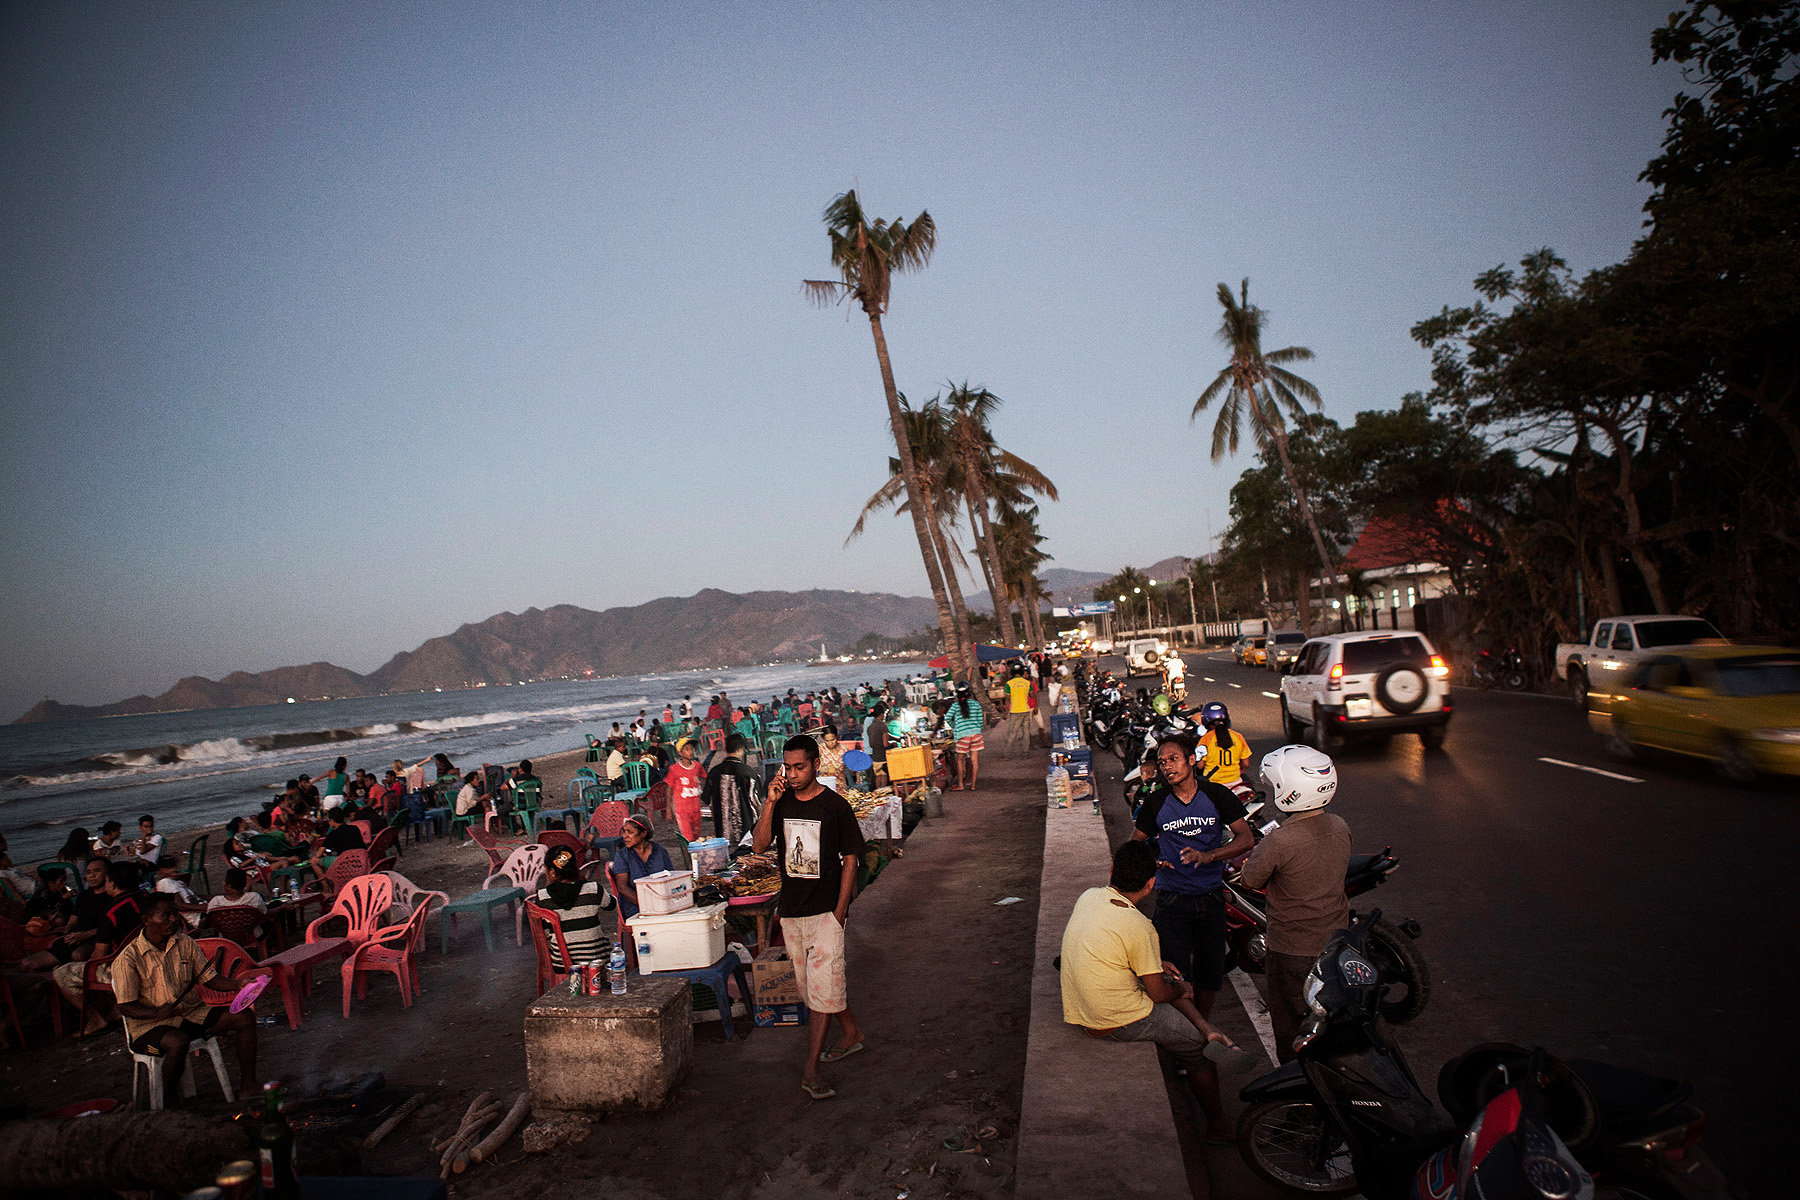 Early evening in Dili, locals gather at makeshift barbecue restaurants on the seafront.